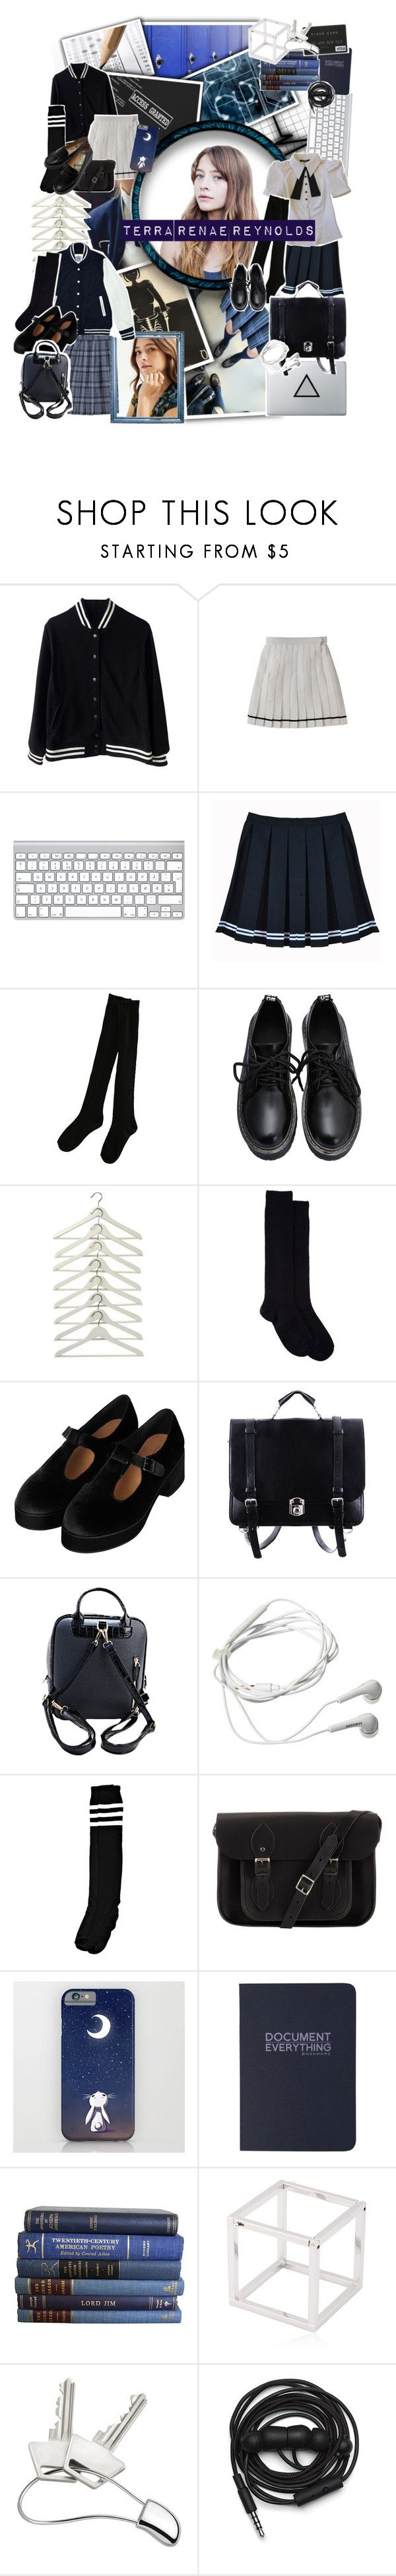 """""""FNAF Minigame #2"""" by spellbooks-and-wands-xo ❤ liked on Polyvore featuring Topshop, Hot Topic, Barneys New York, Samsung, Boohoo, The Cambridge Satchel Company, 10¹² Terra, Caterina Zangrando, Georg Jensen and Urbanears"""